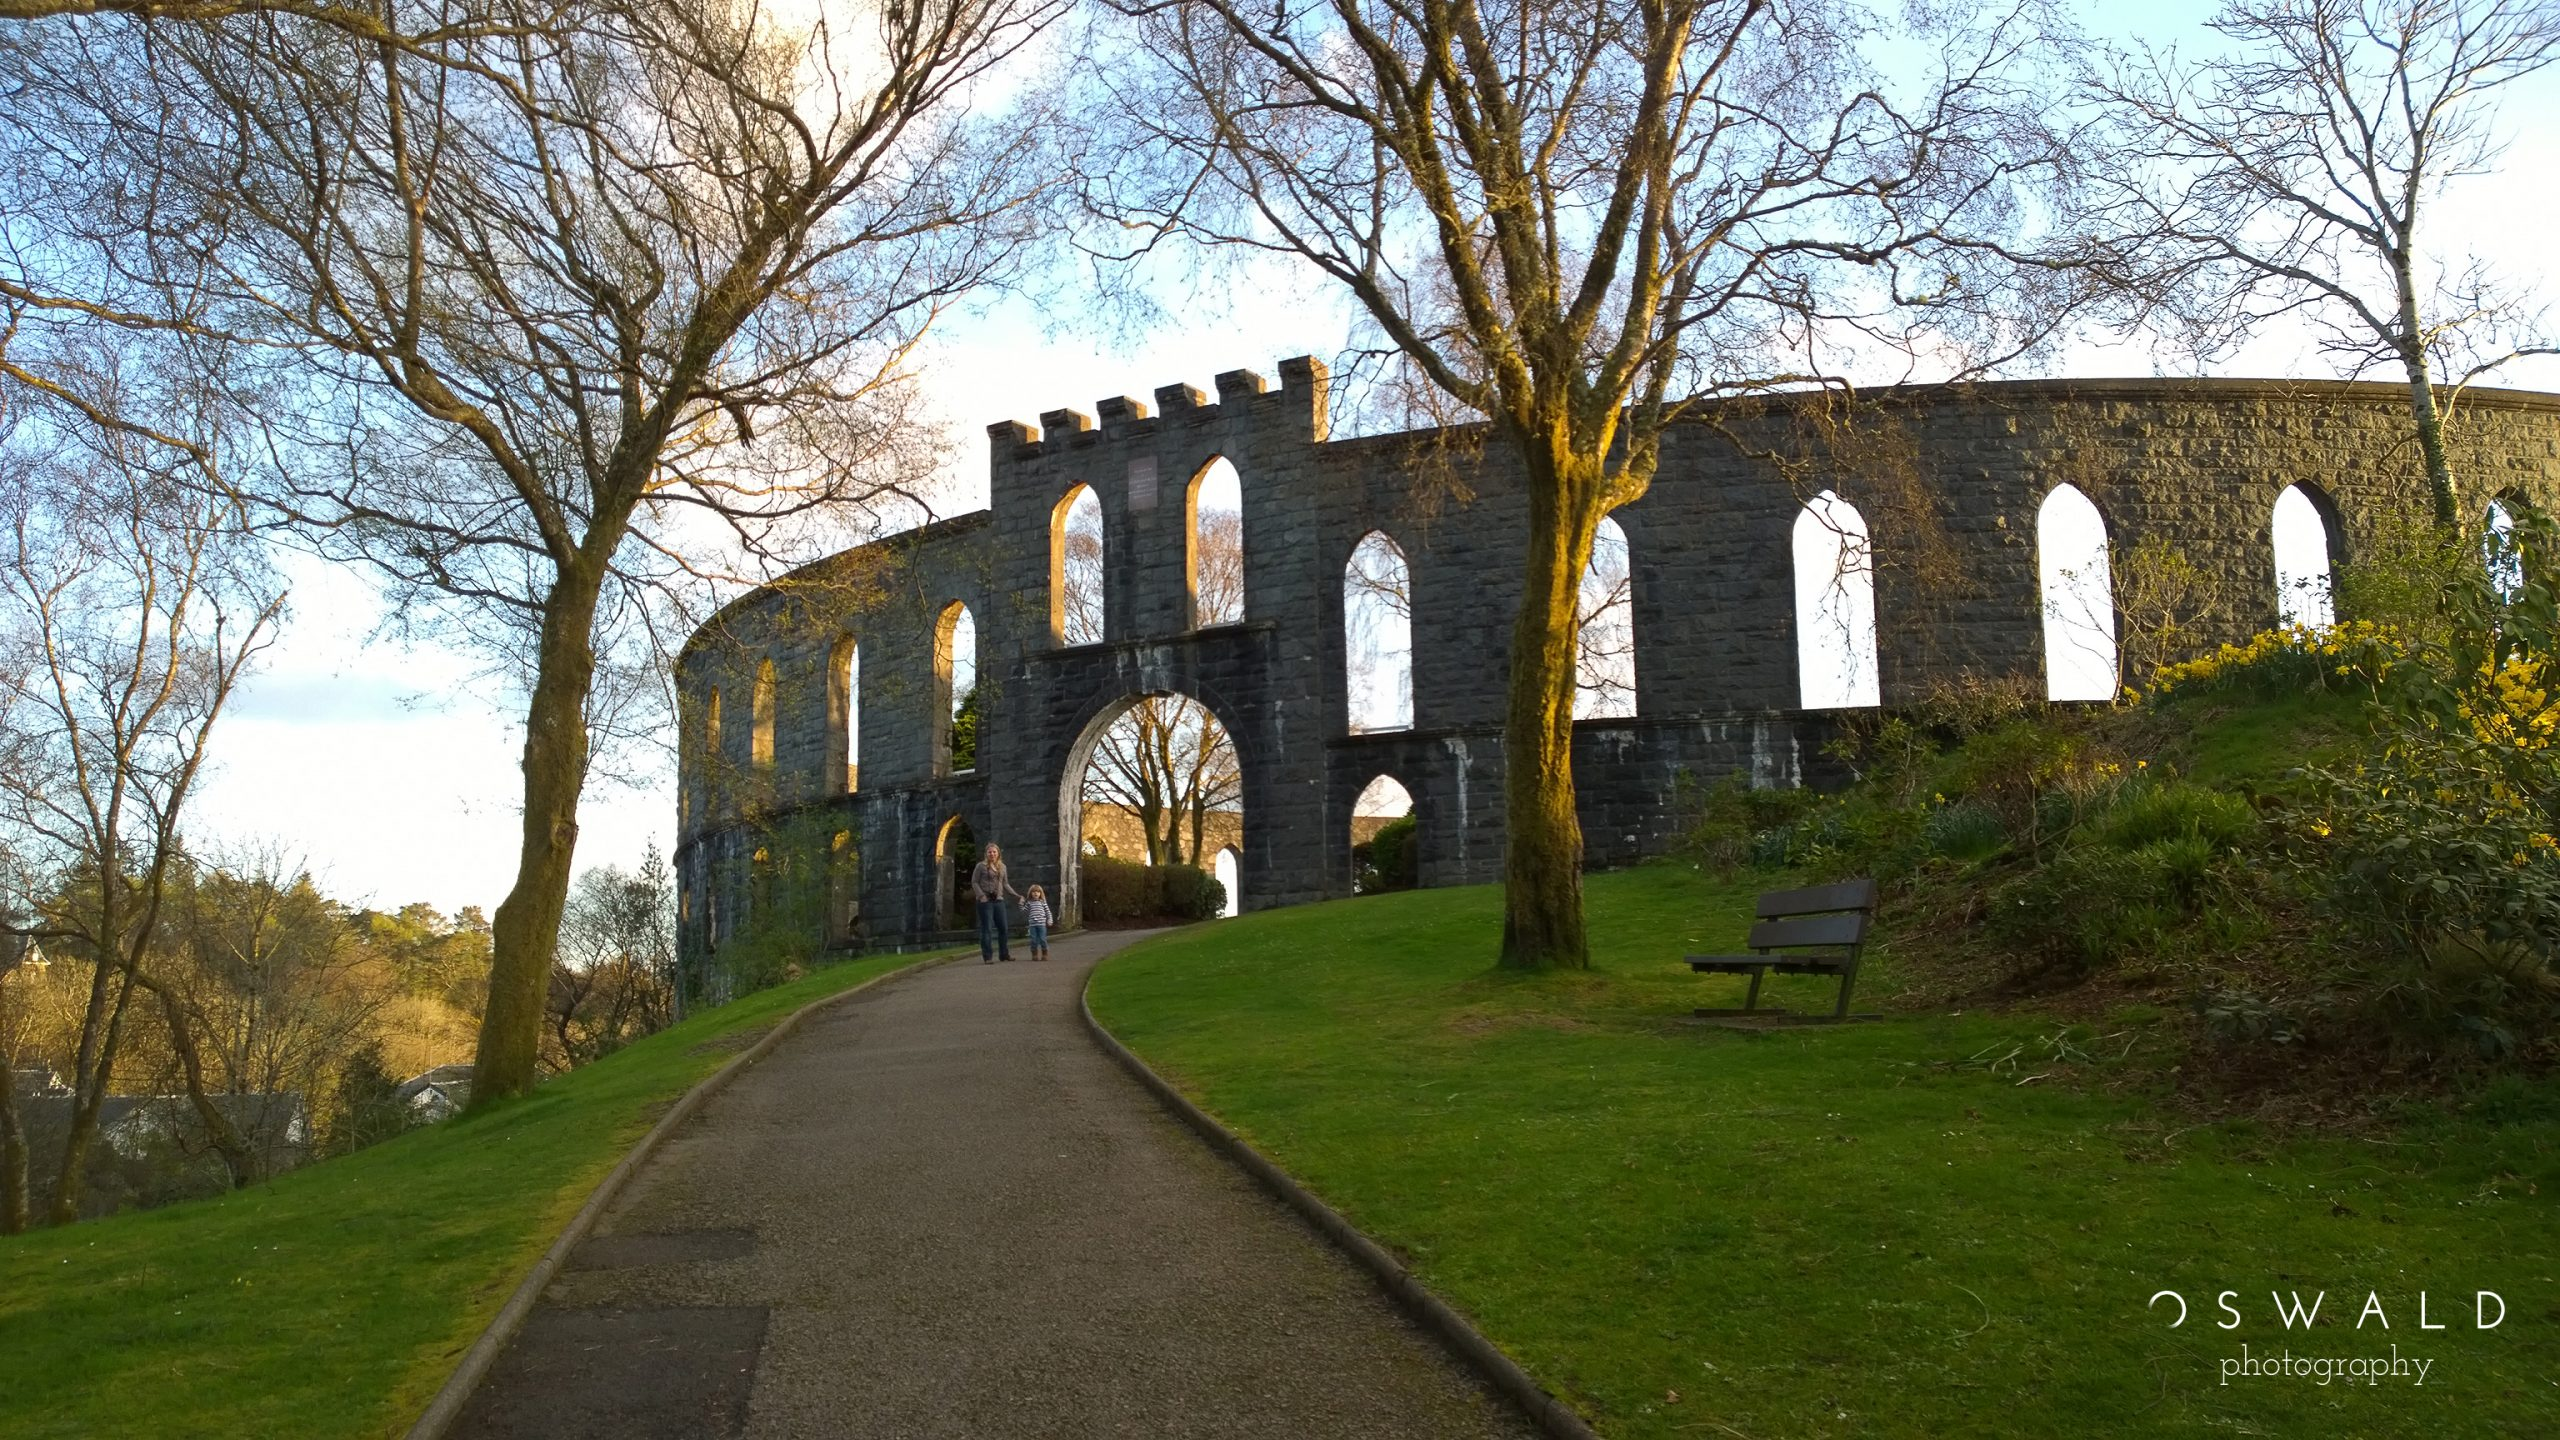 A photography of McCaig's Tower in Oban, Scotland.